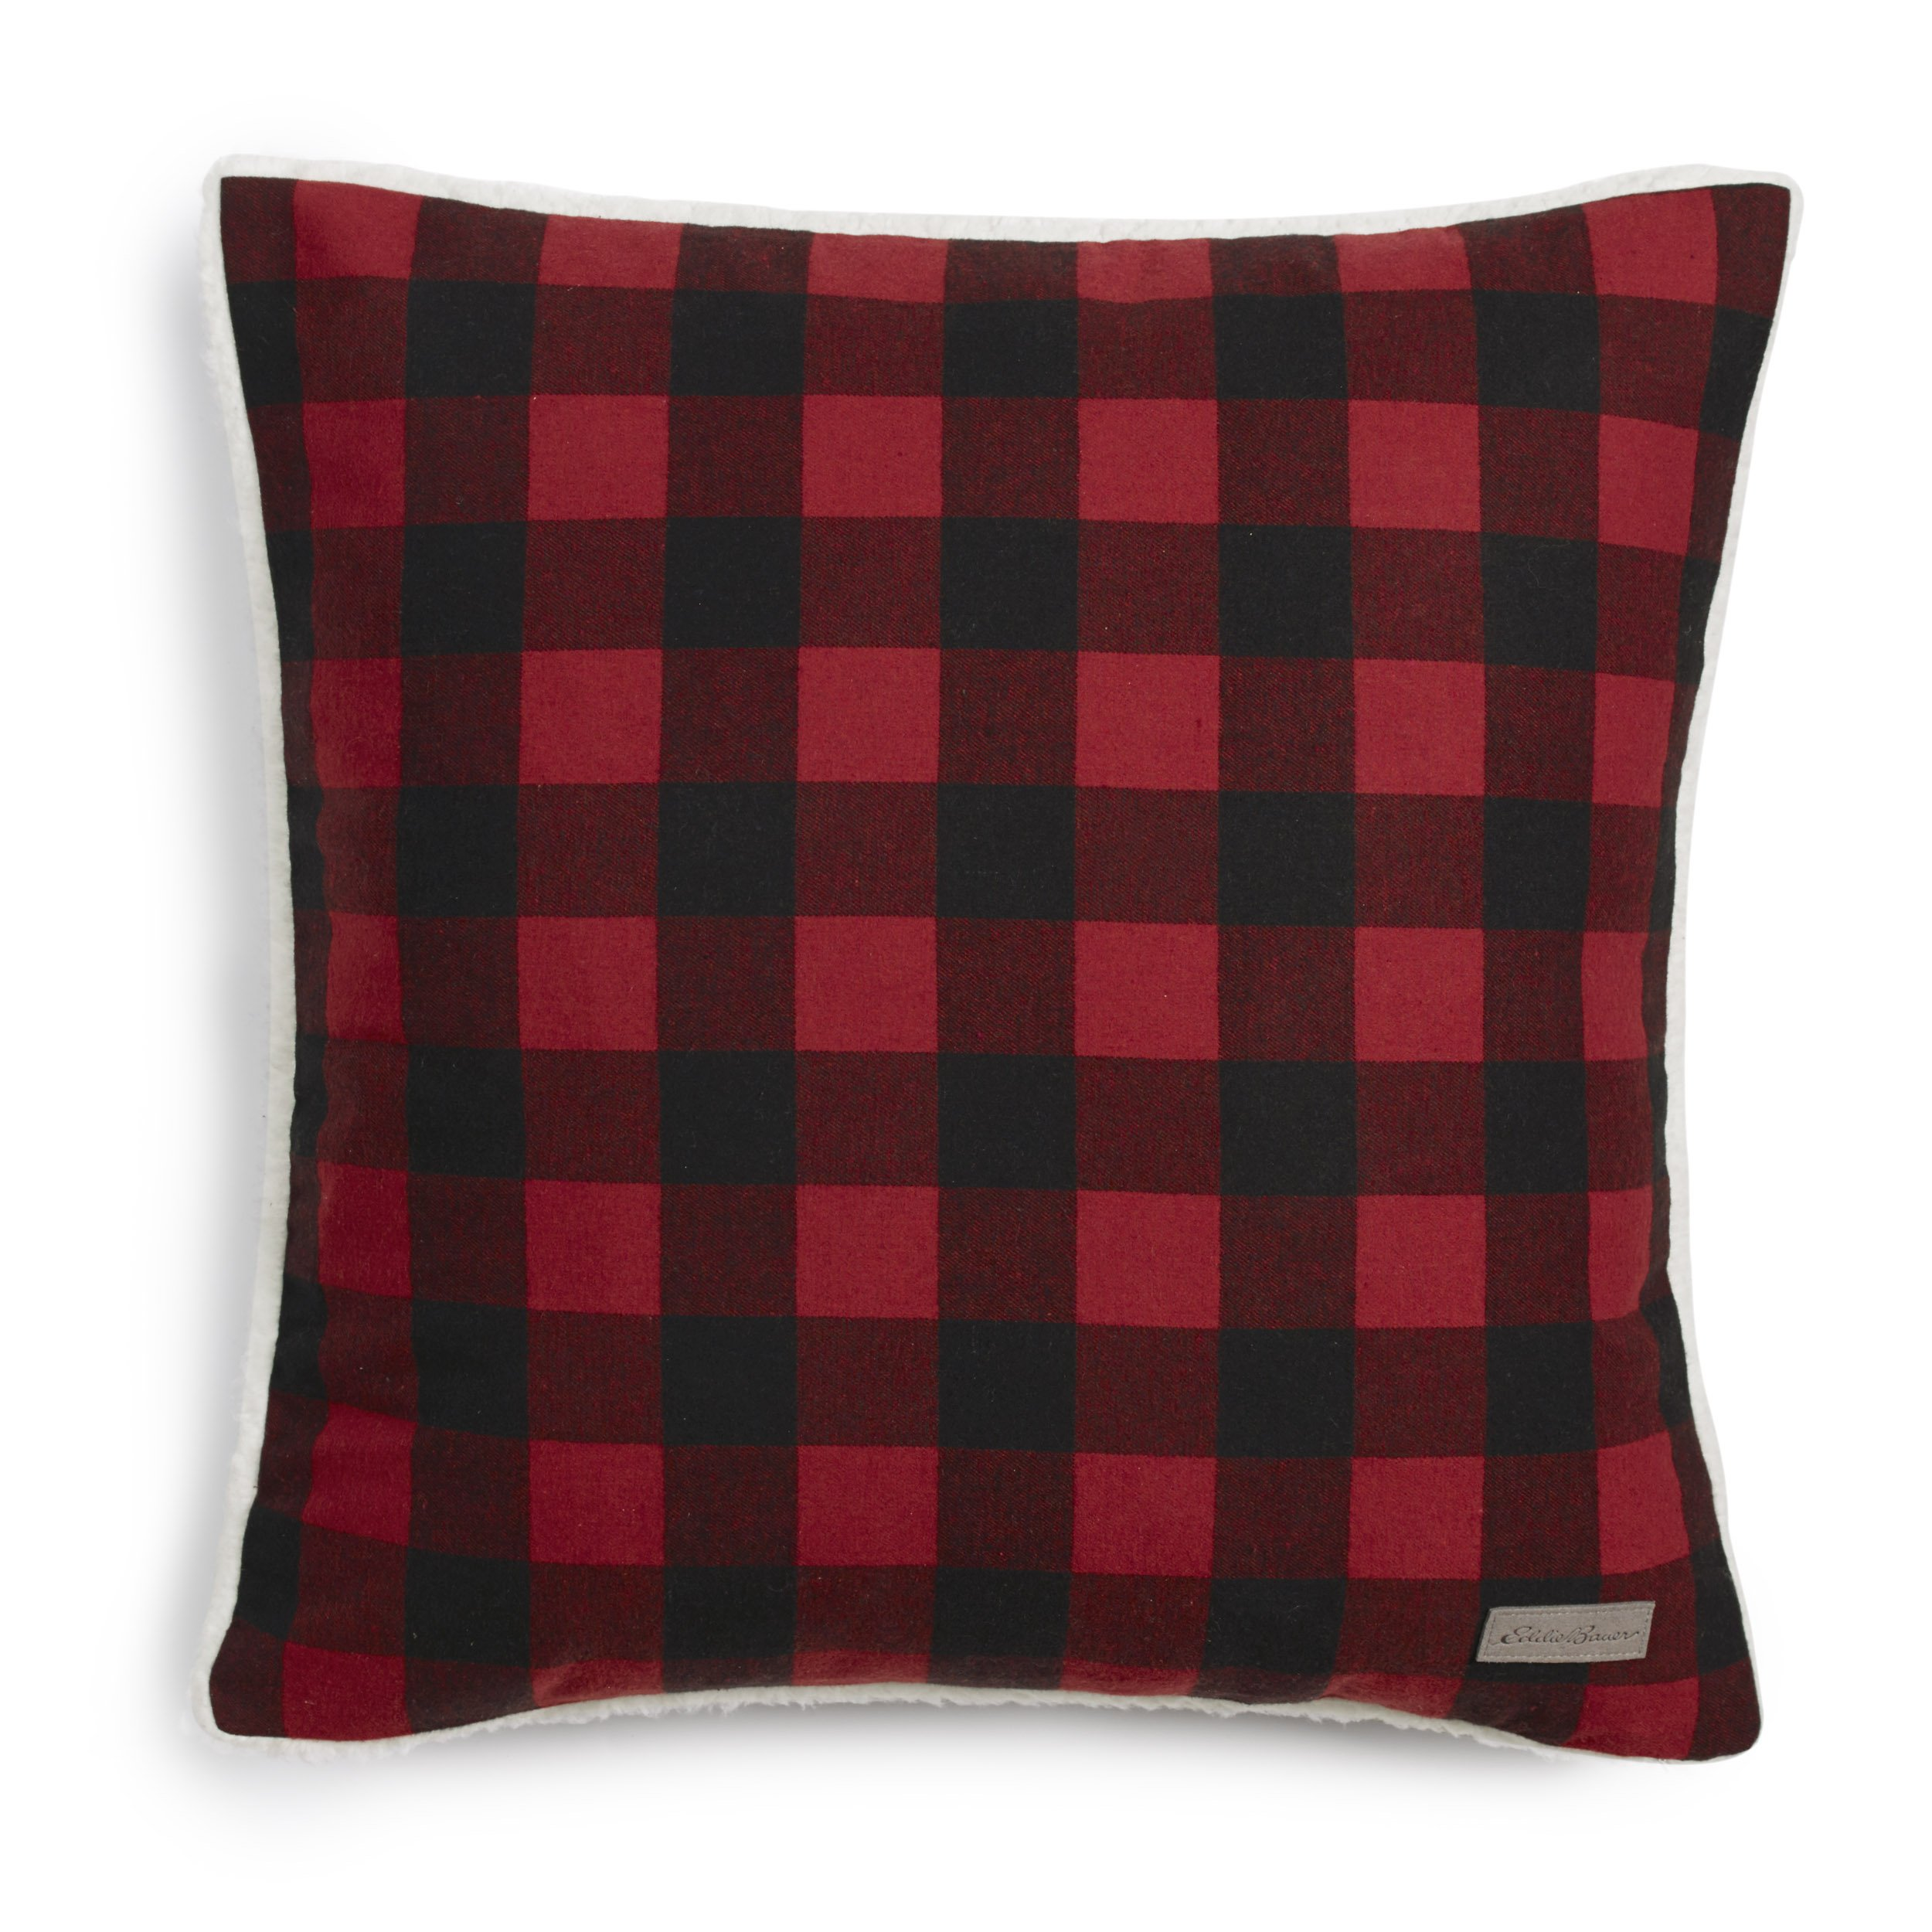 Eddie Bauer 216690 Cabin Plaid Flannel 20'' Decorative Pillow,Red